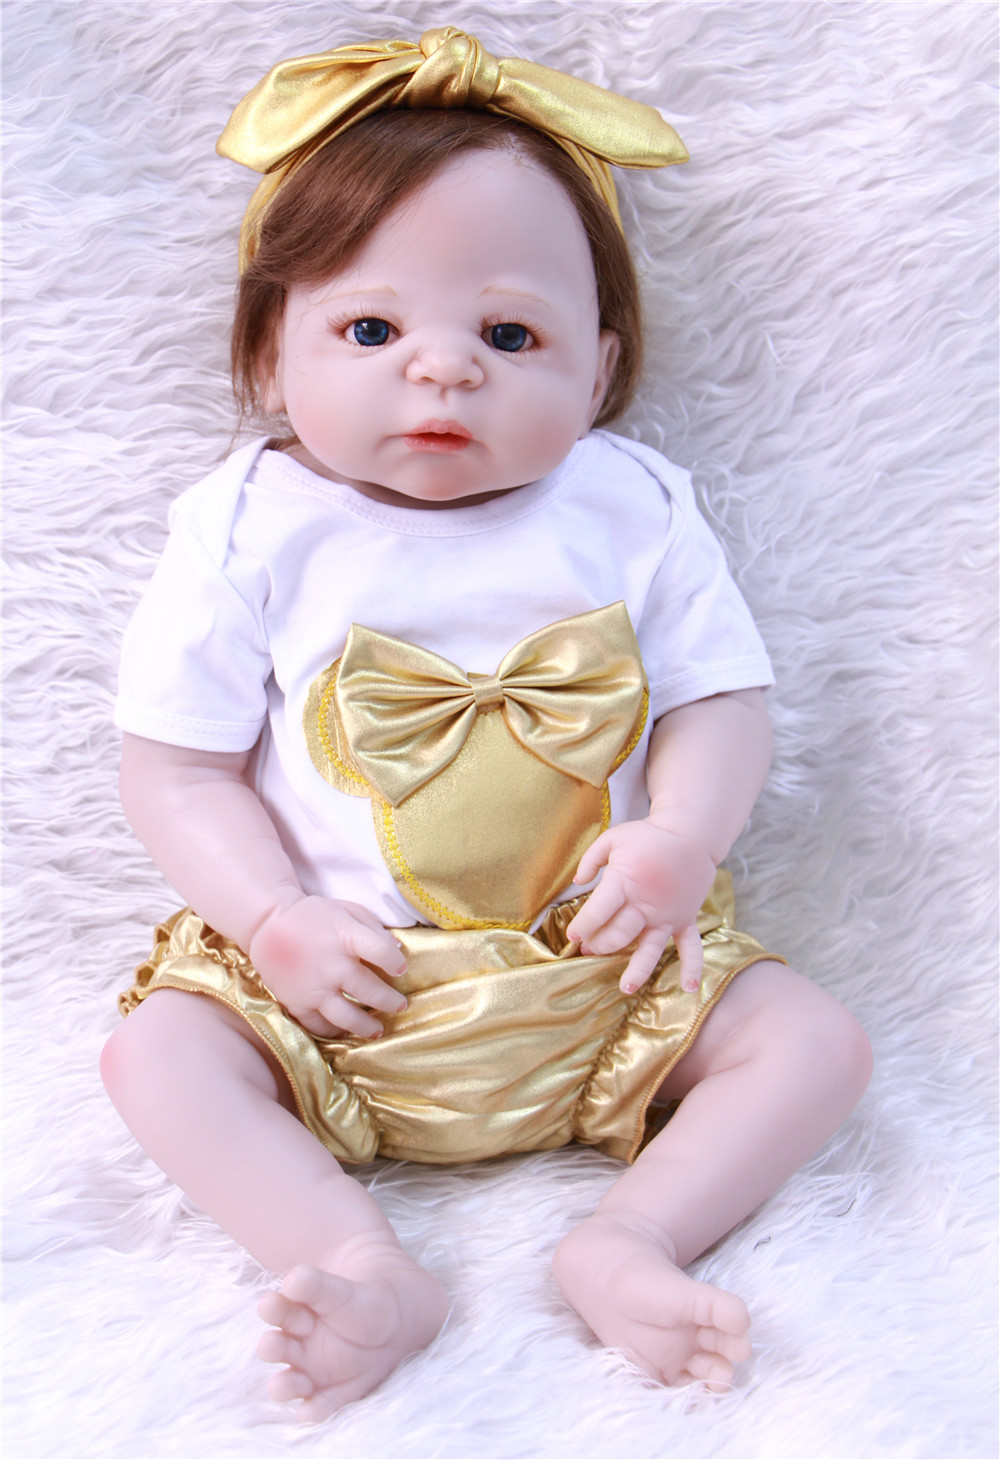 soft hair reborn doll girl 55cm Full Body silicone Reborn babies Dolls brown eyes Lifelike baby Toy for Children Christmas Gift soft hair reborn doll girl 55cm Full Body silicone Reborn babies Dolls brown eyes Lifelike baby Toy for Children Christmas Gift